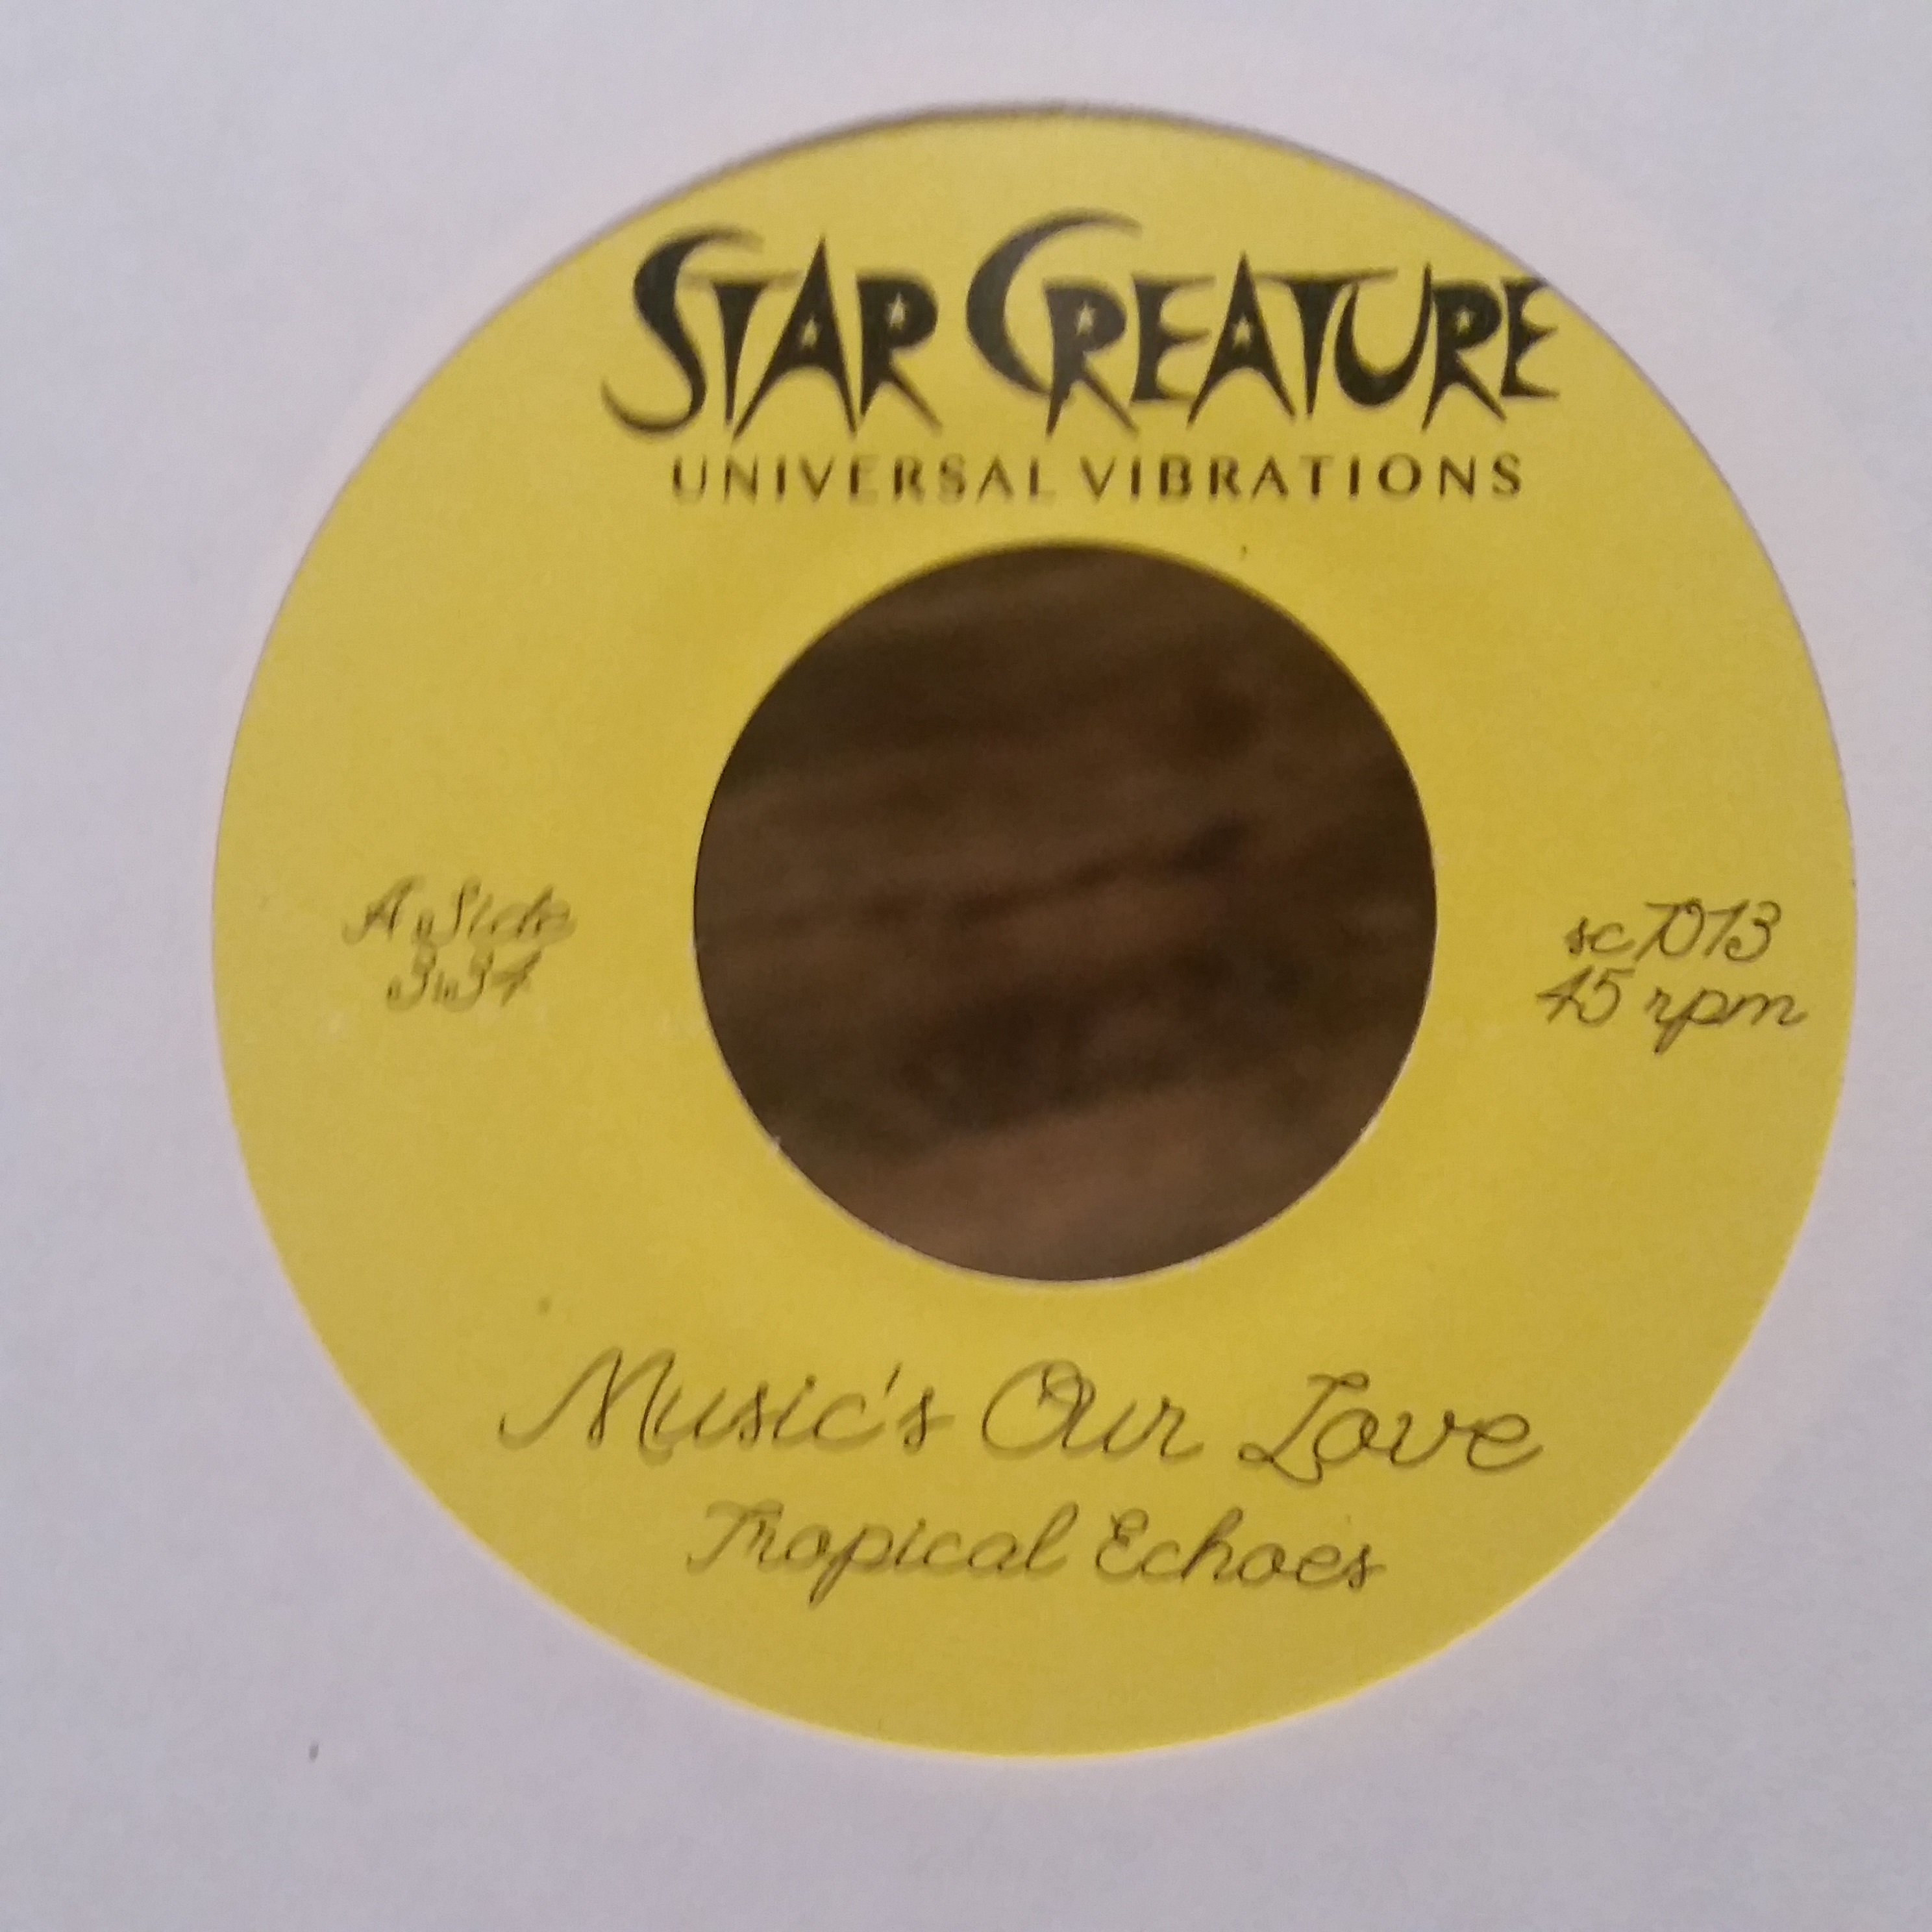 Tropical Echoes/MUSIC'S OUR LOVE 7""